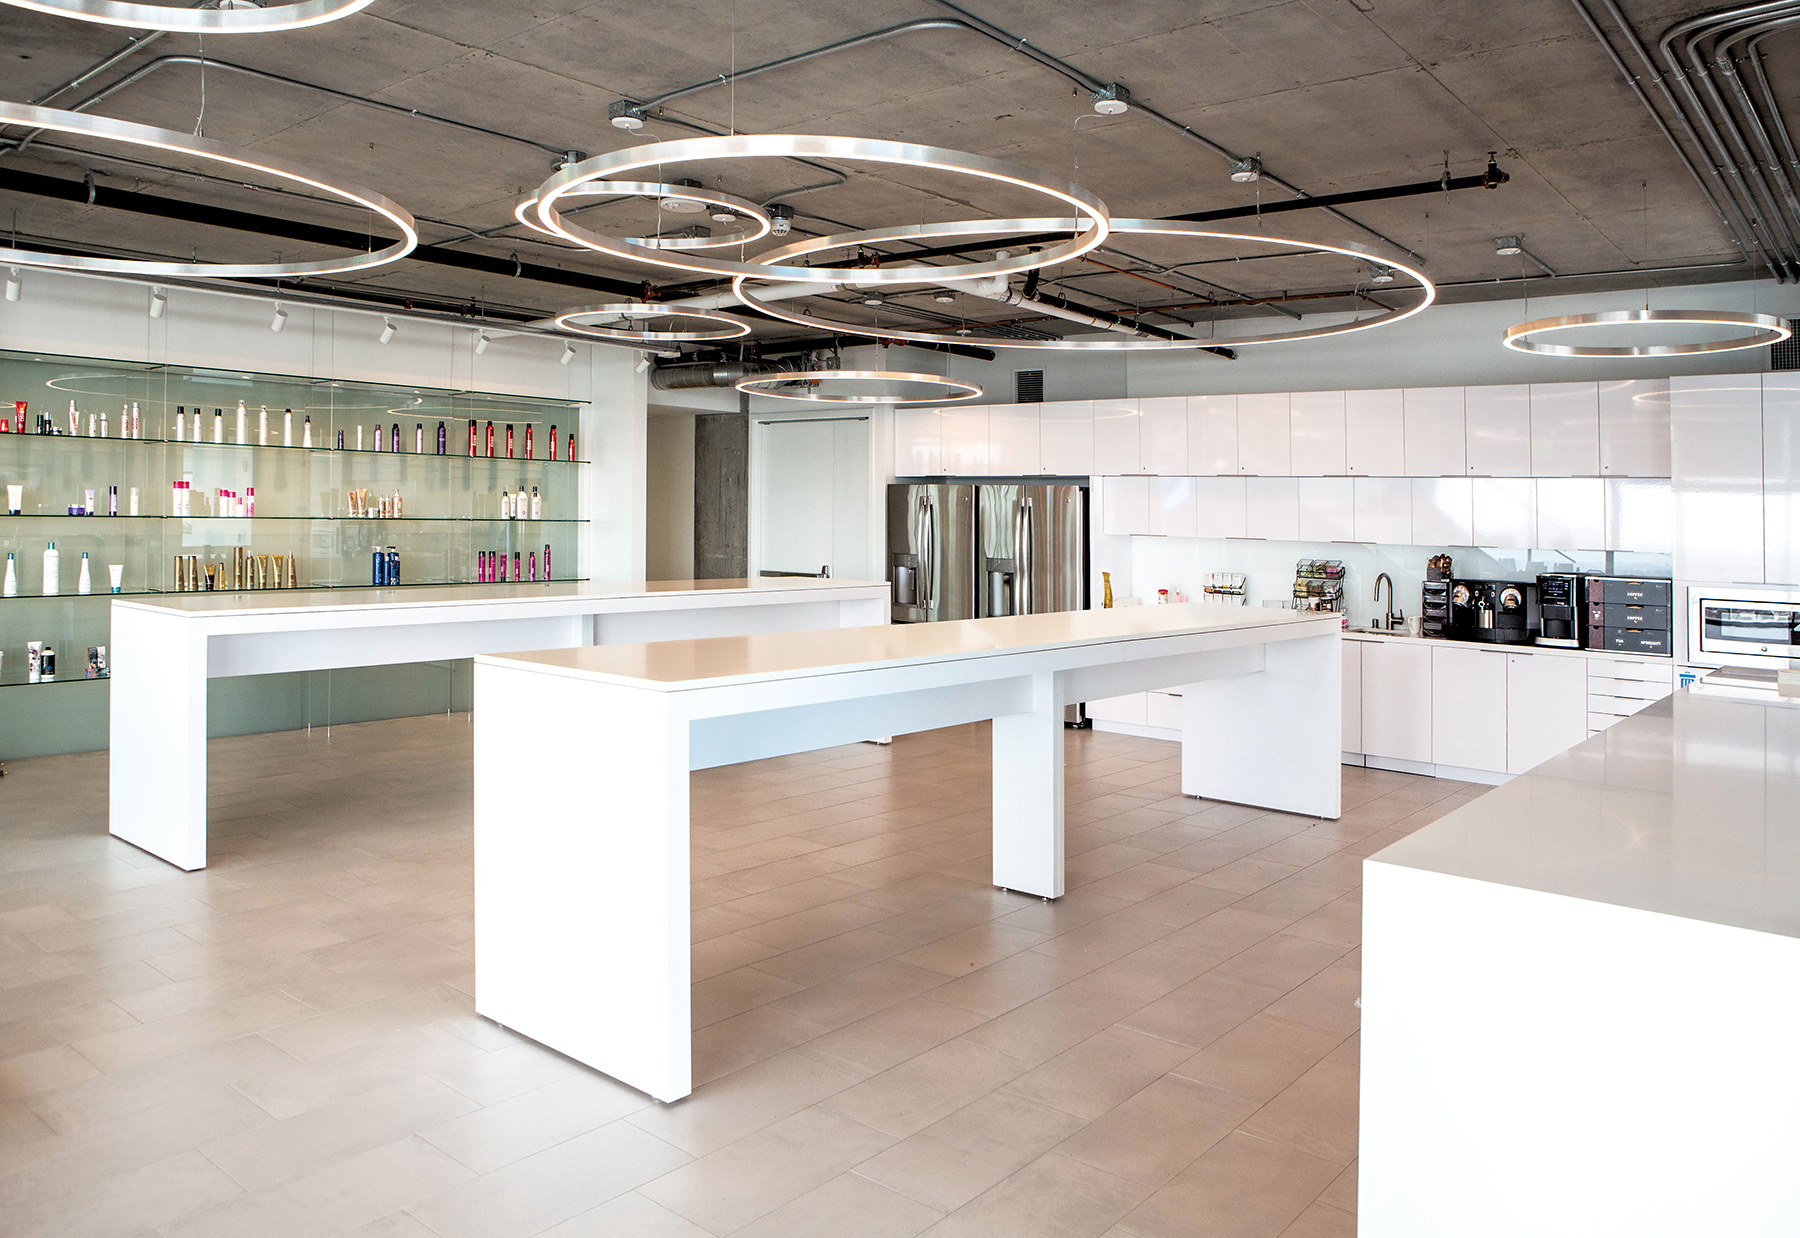 Adding Multimedia Henkel Opens Academyofhair At Its Beauty Care